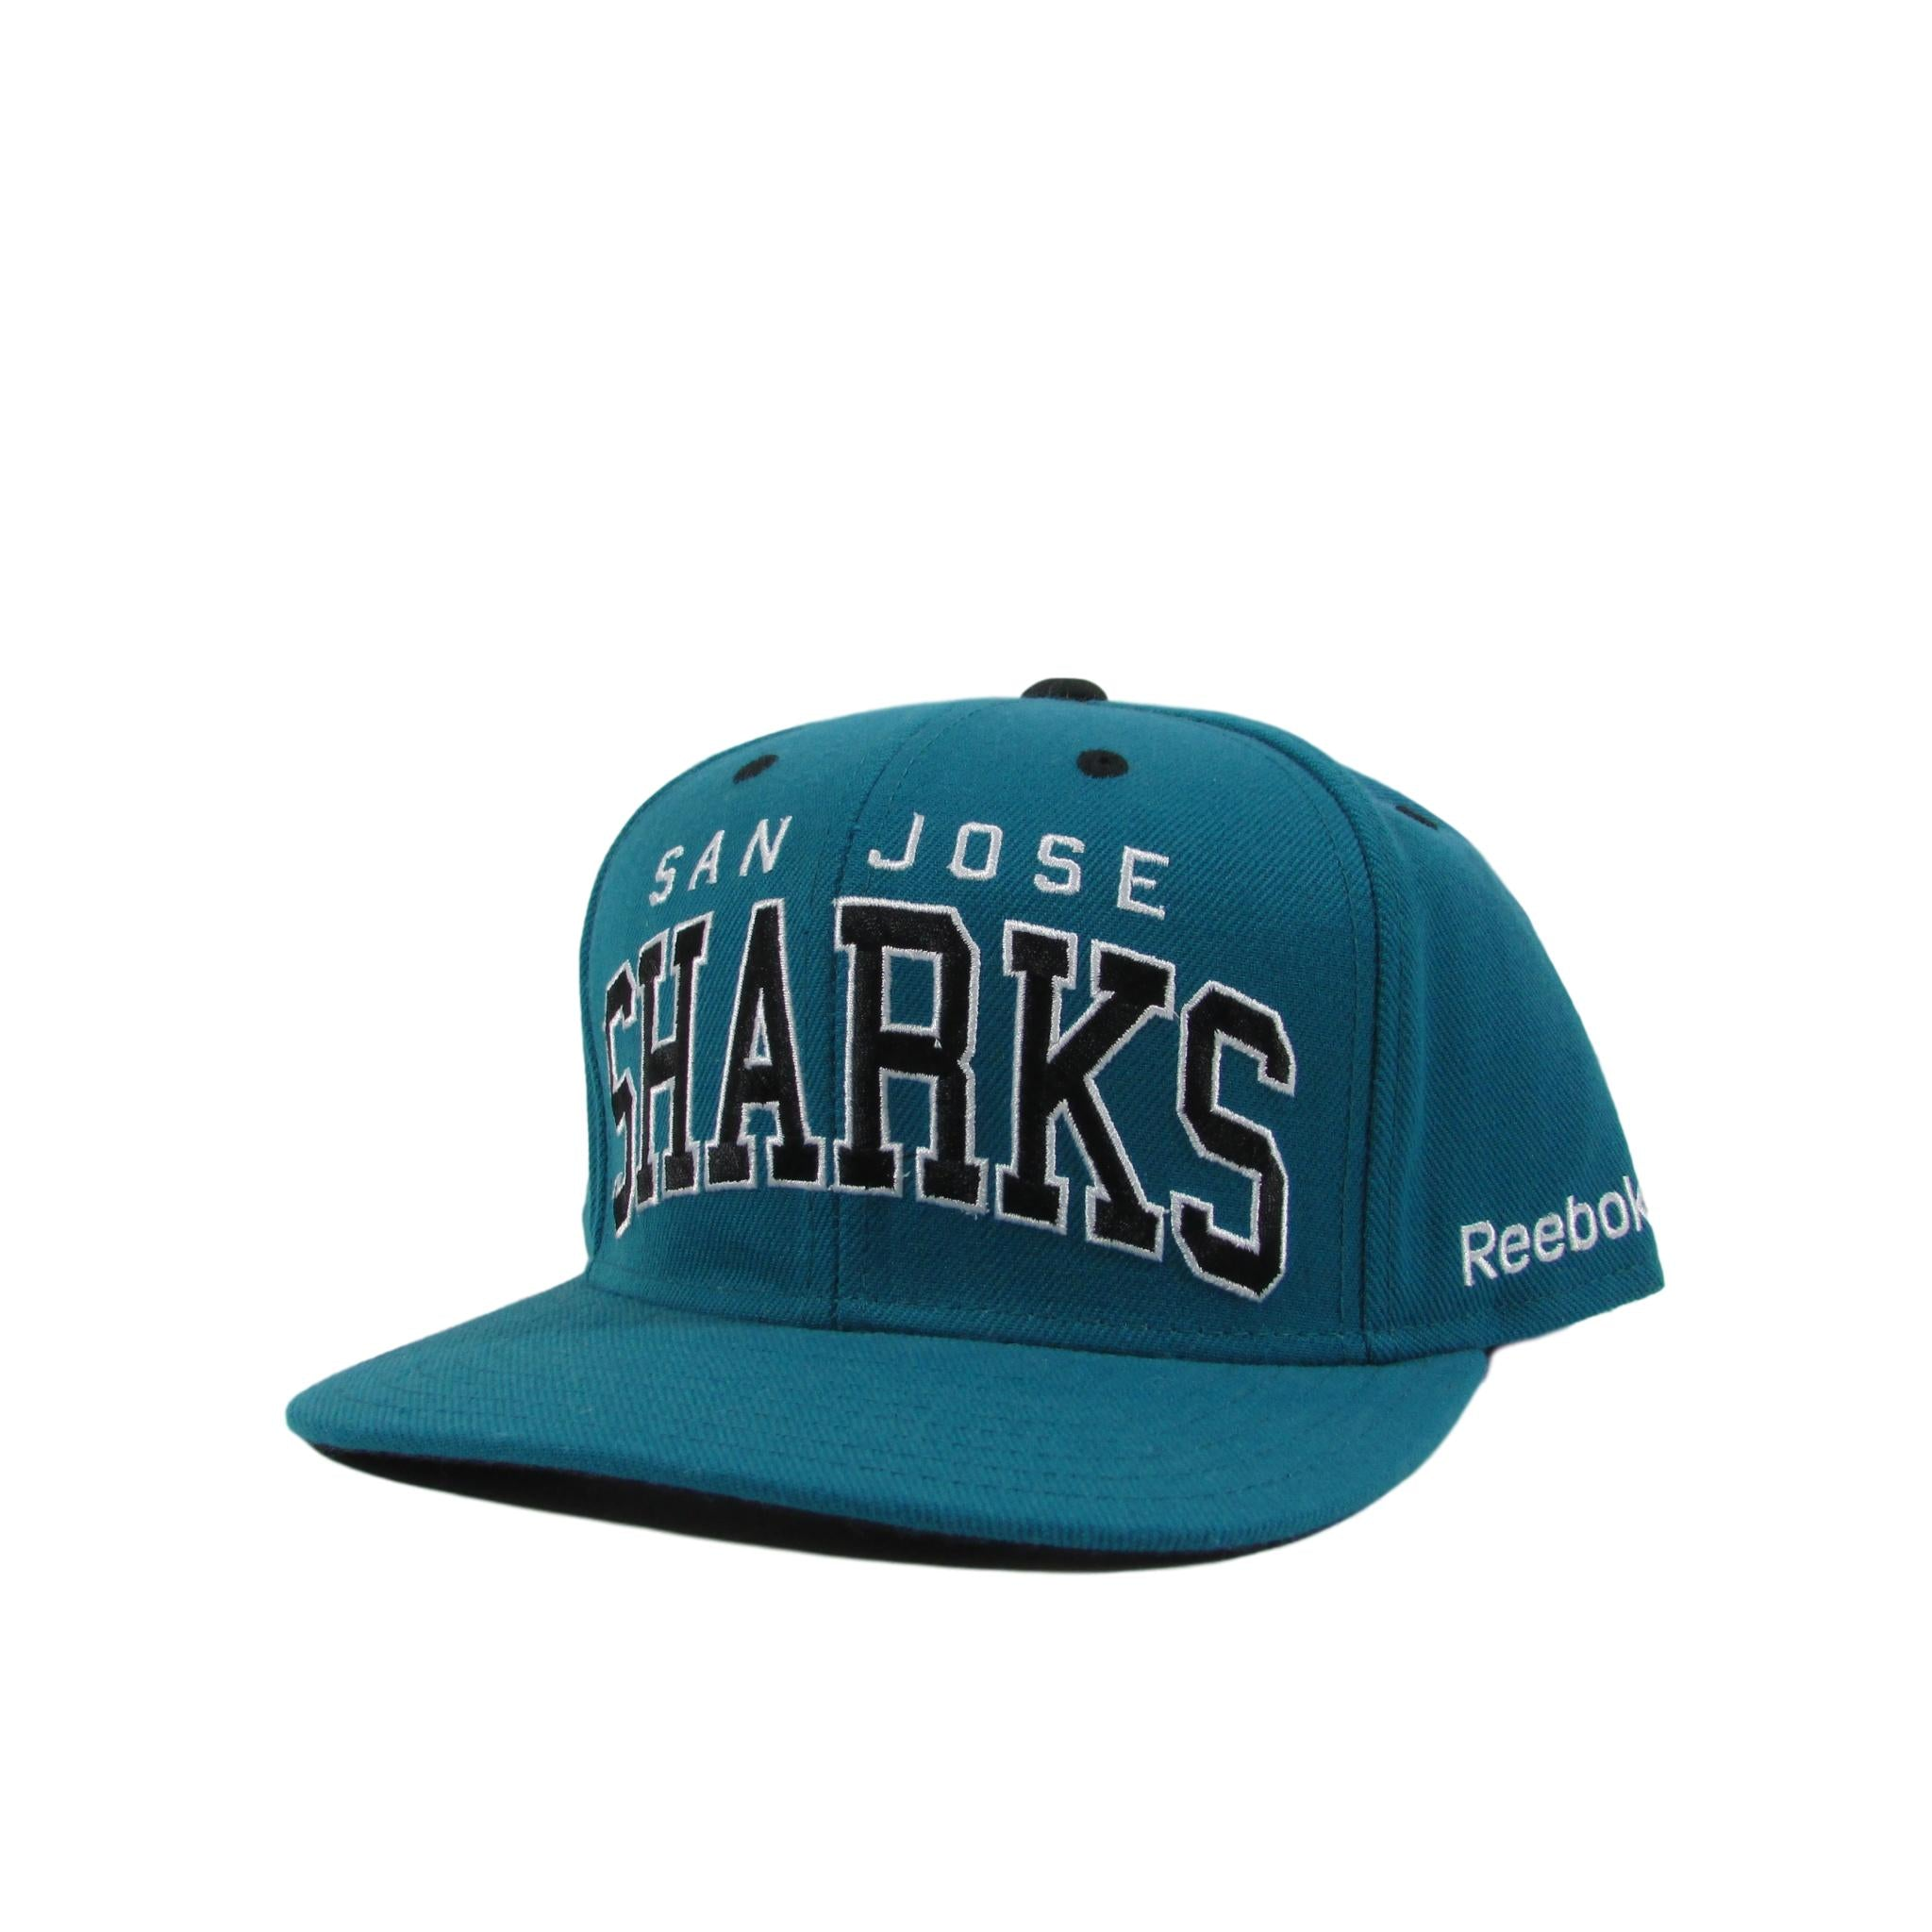 San Jose Sharks Arch Font Snapback Hat Hockey NHL Reebok